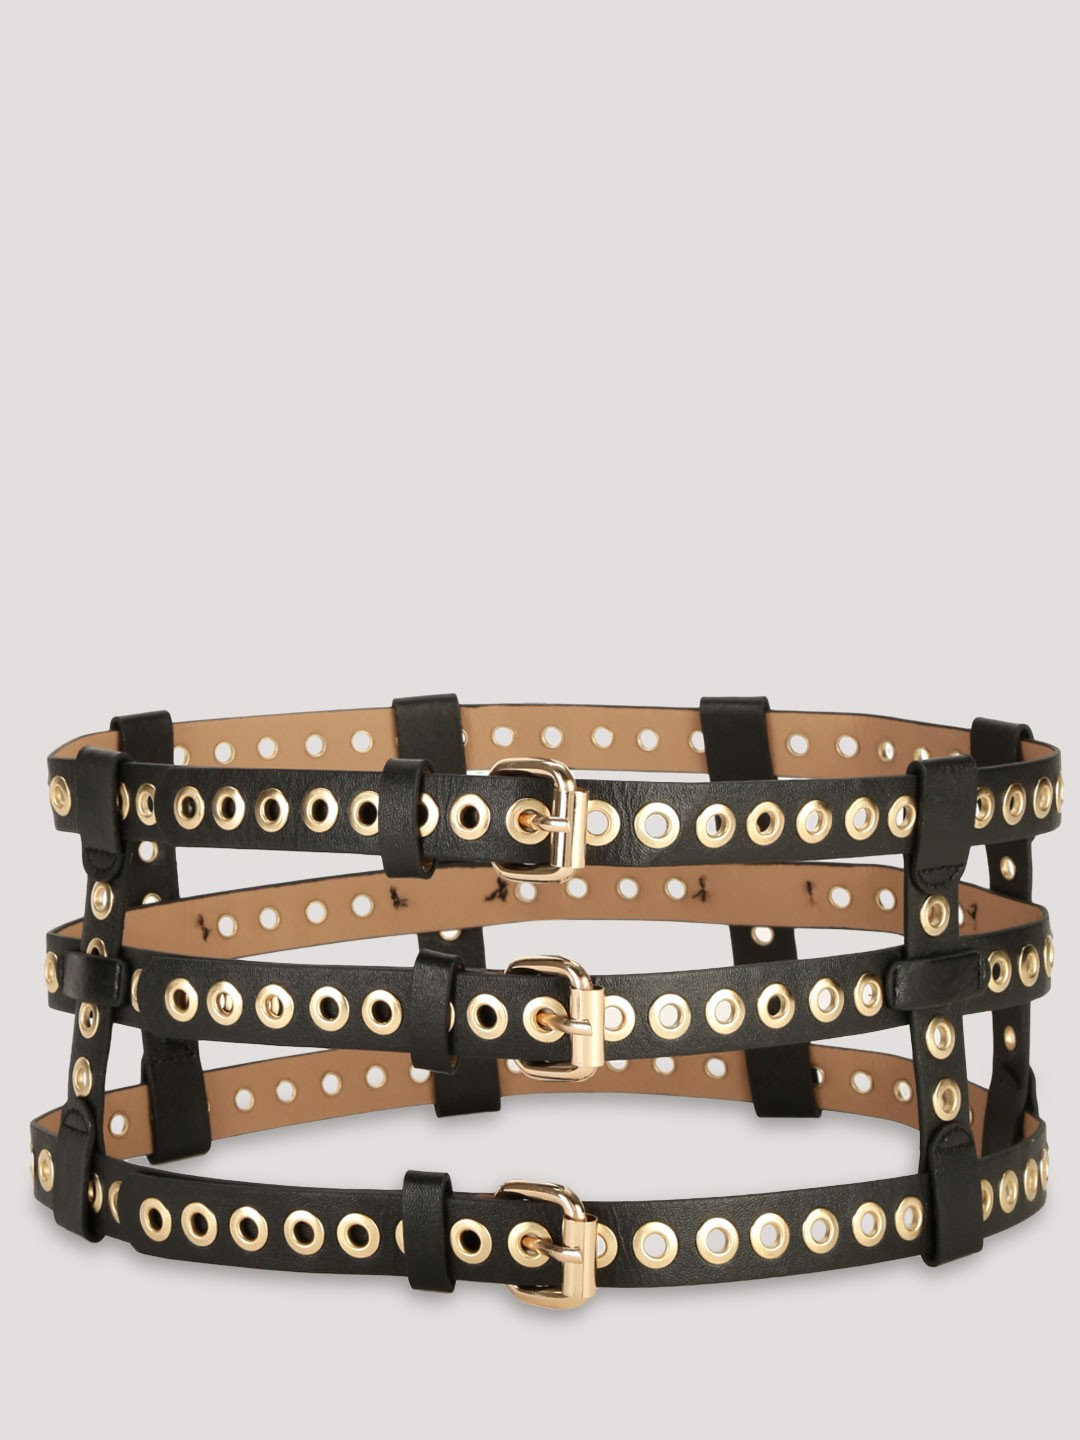 Buy women's belts online. Get trendy boutique belts in a variety of colors and styles. Shop for a great accent to your outfit. Buy your women's belt today.